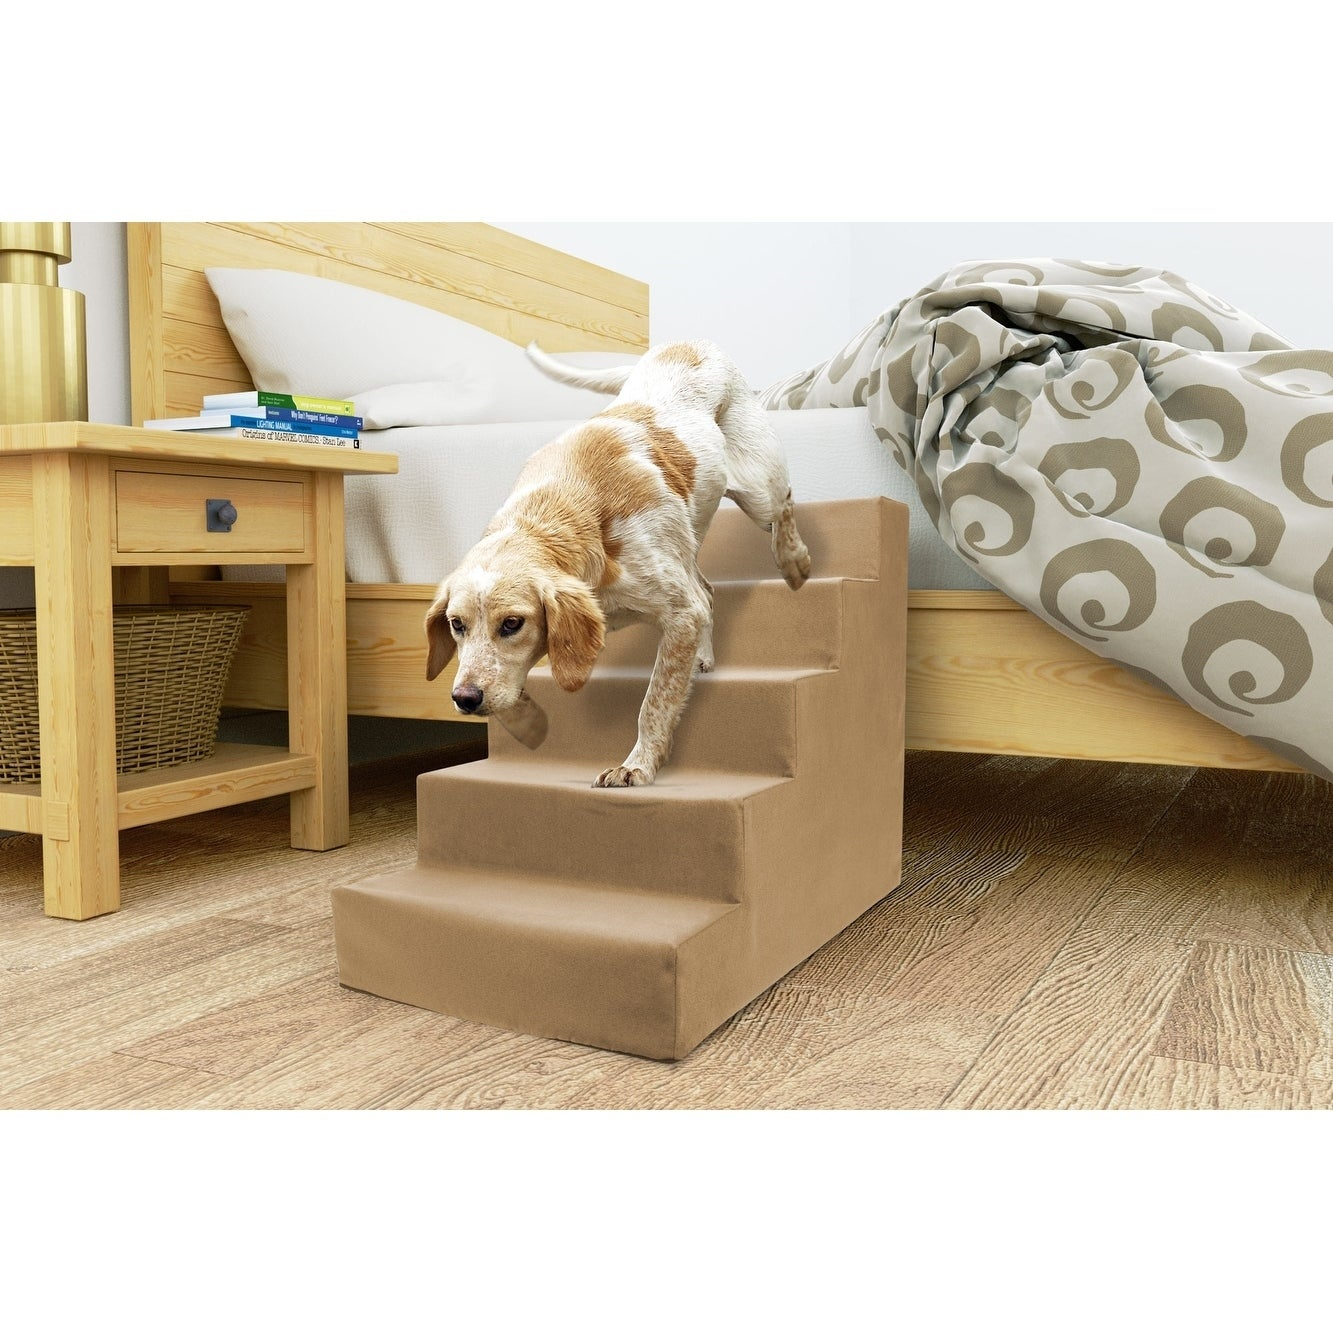 5 Step Portable Pet Stairs By Home Base (Tan)